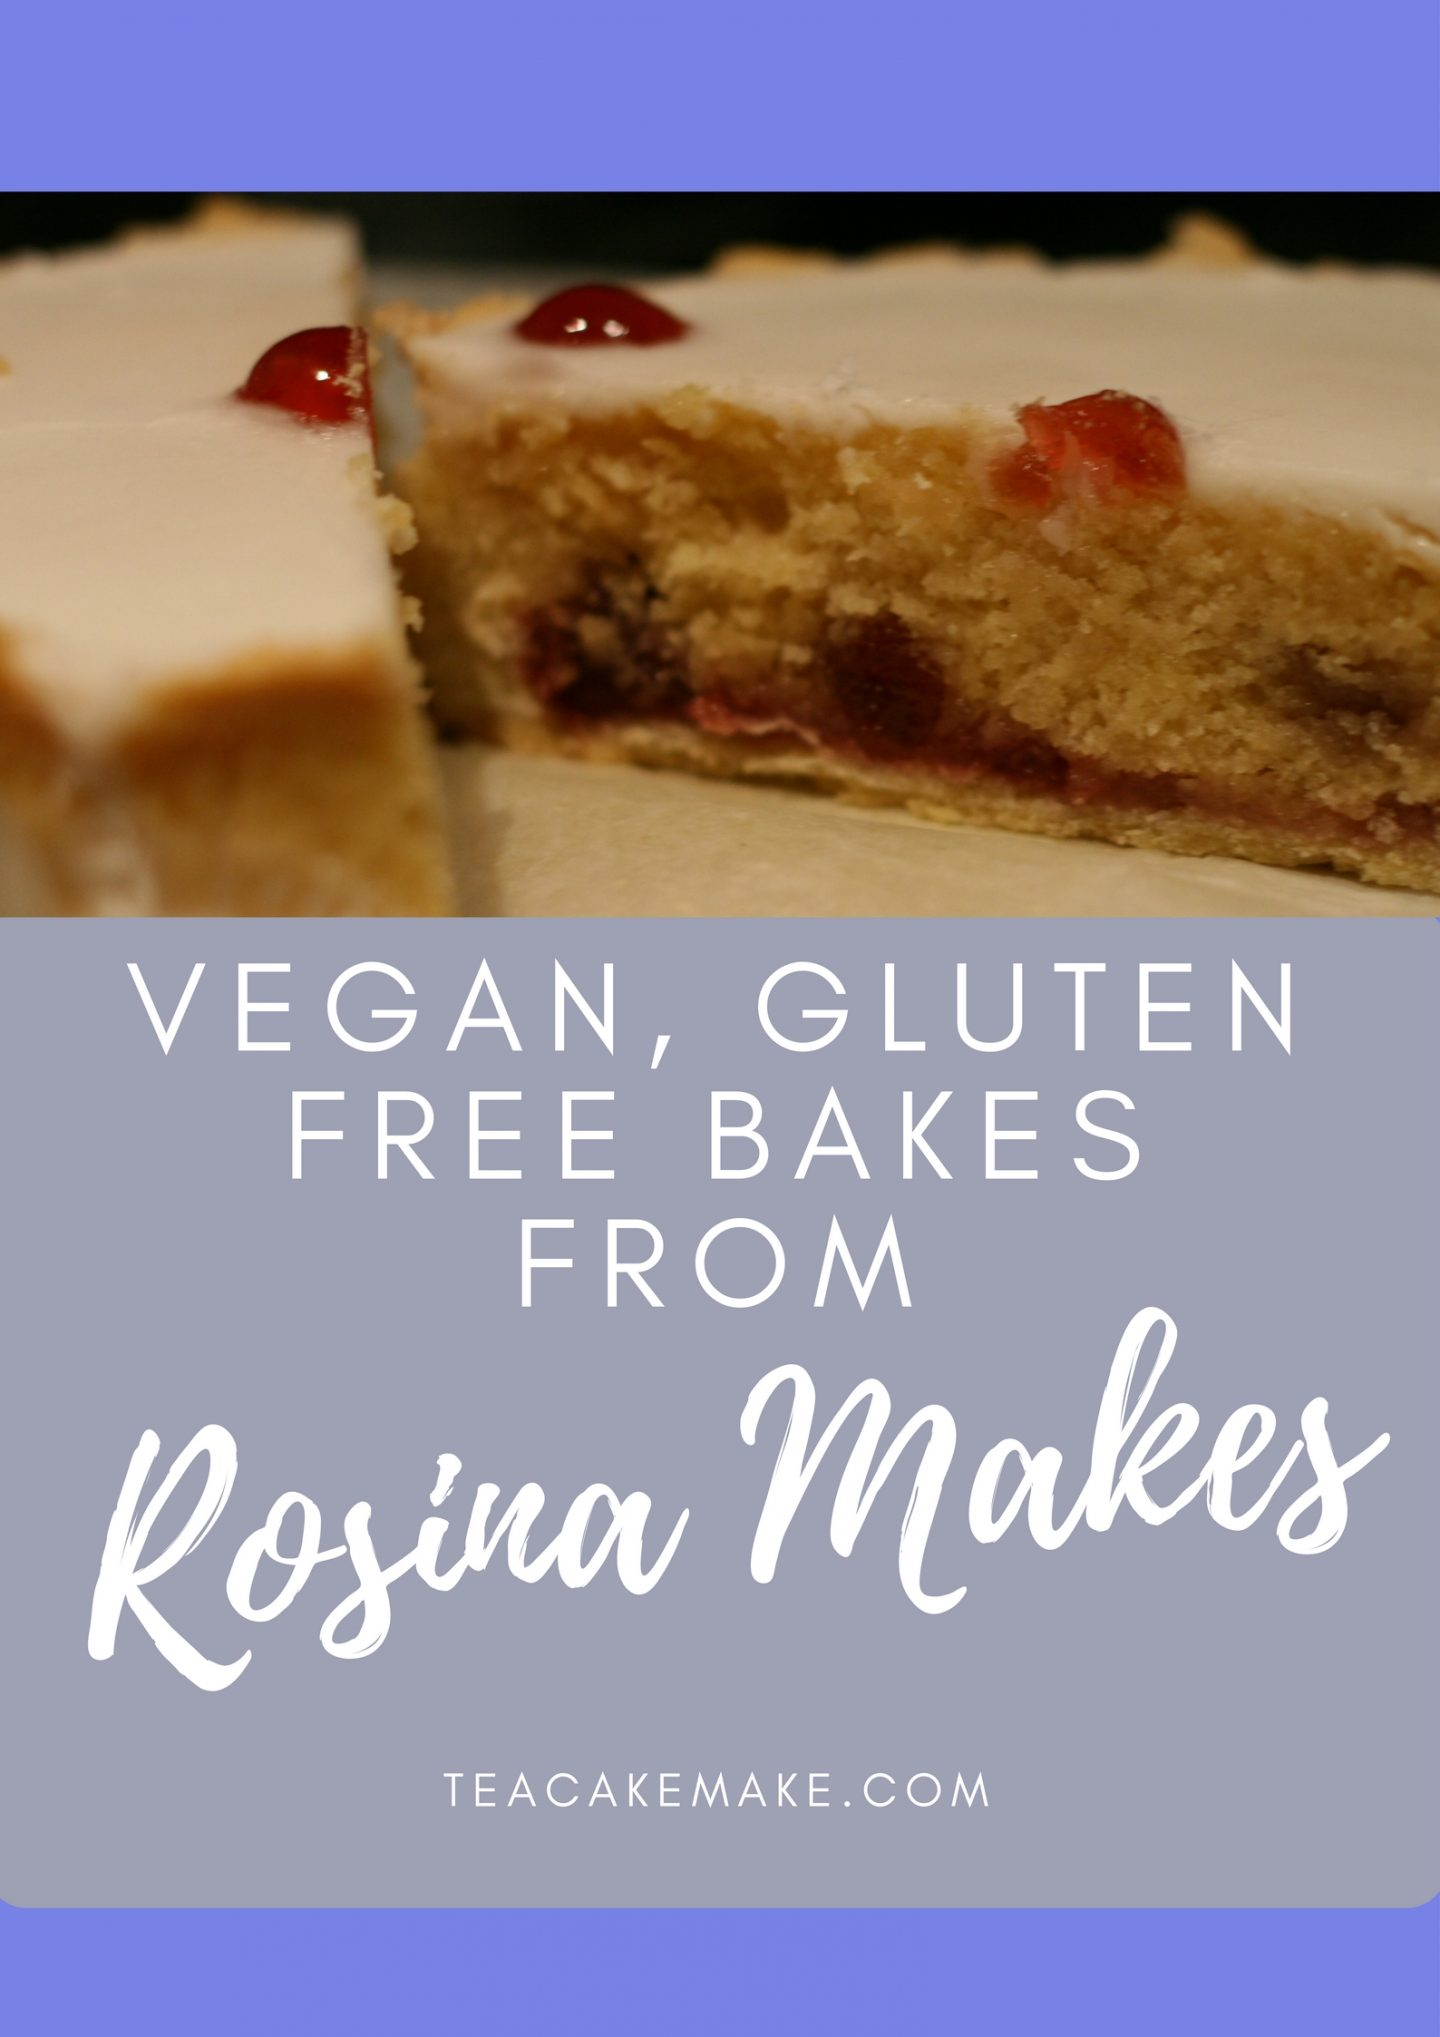 vegan gluten free bakes rosina makes